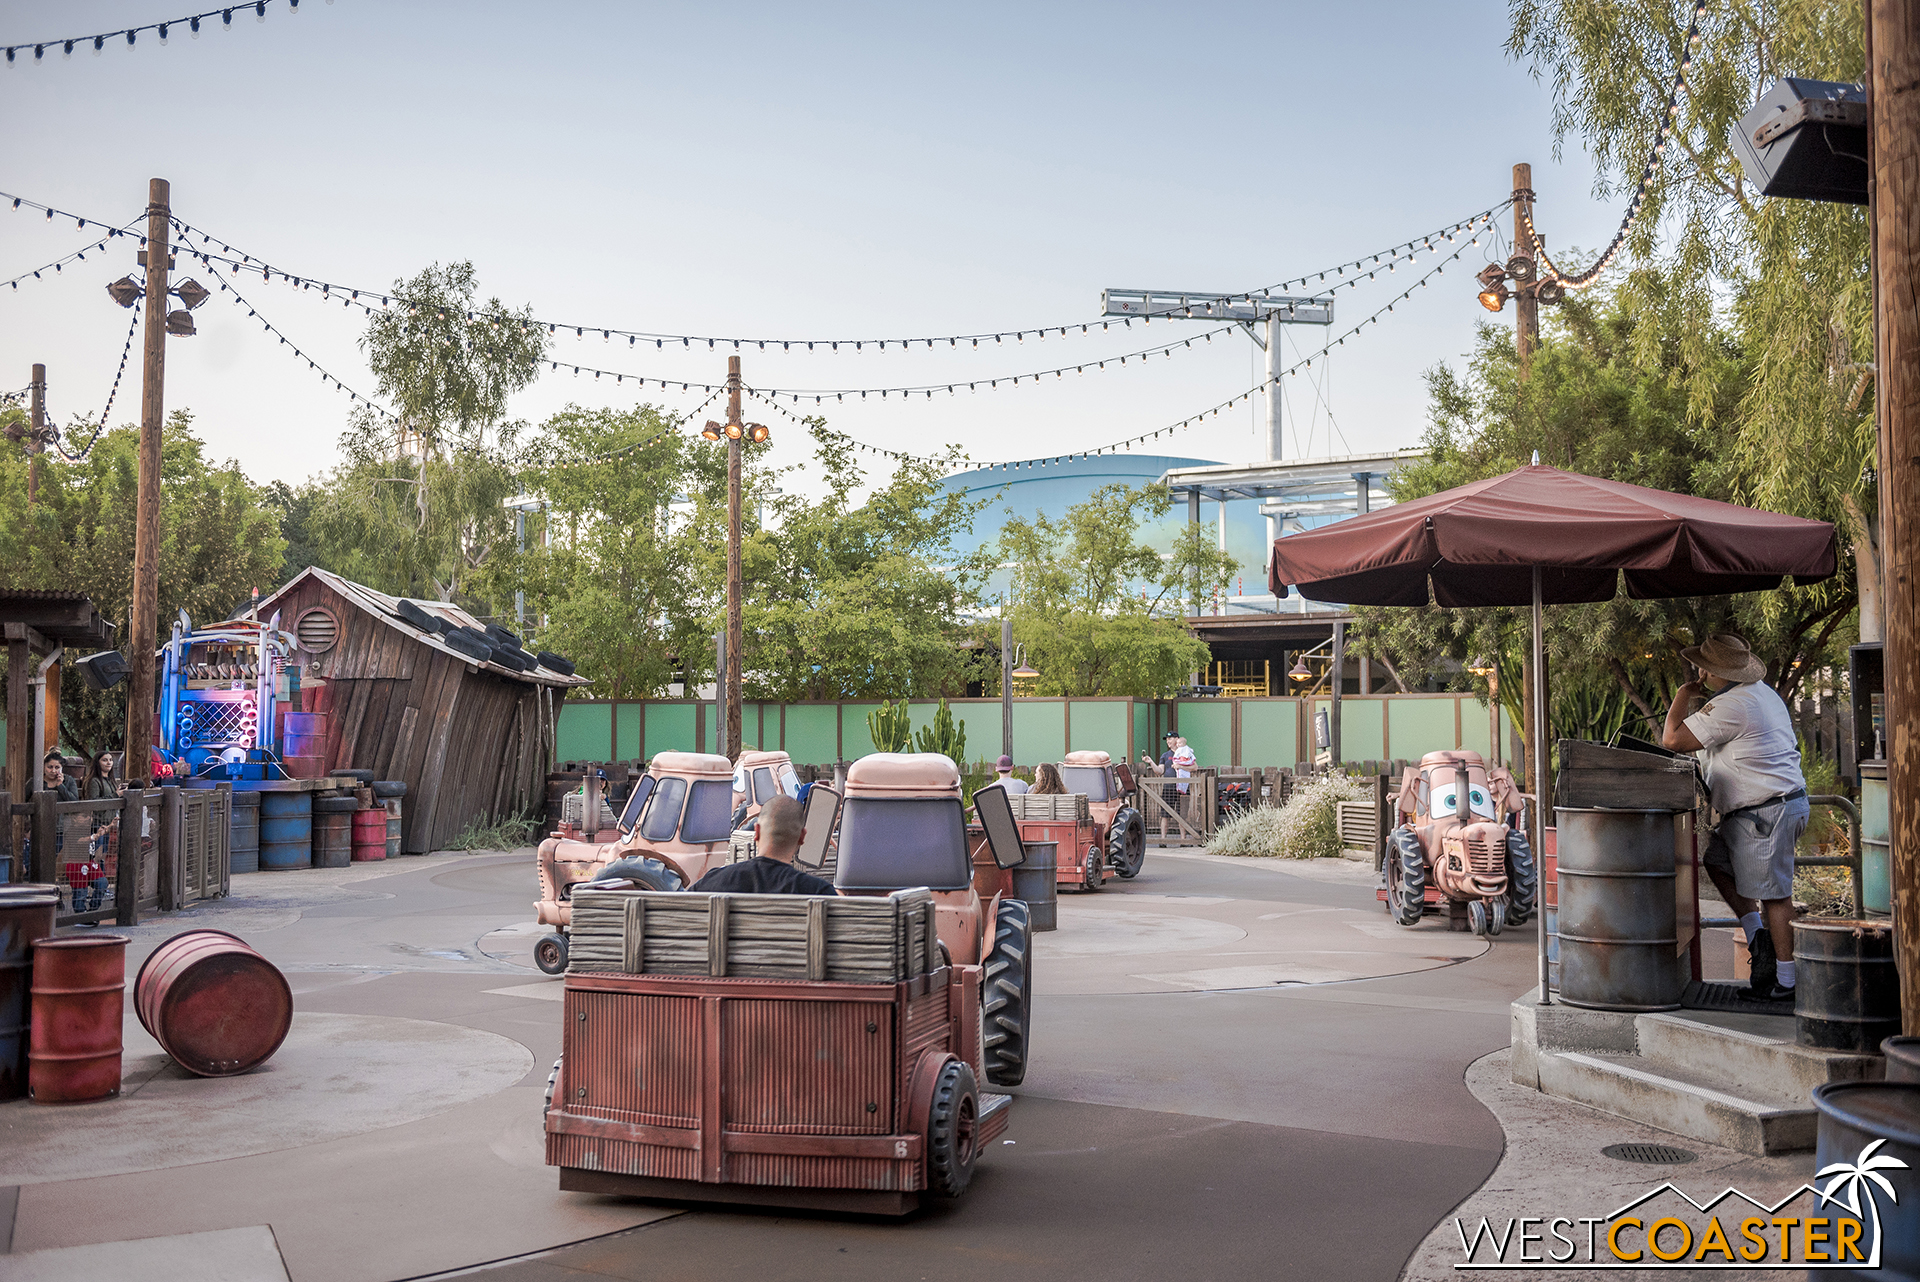 It's pretty visible from next door Cars Land.  I'm interested in how they deal with land sightlines and transitions.